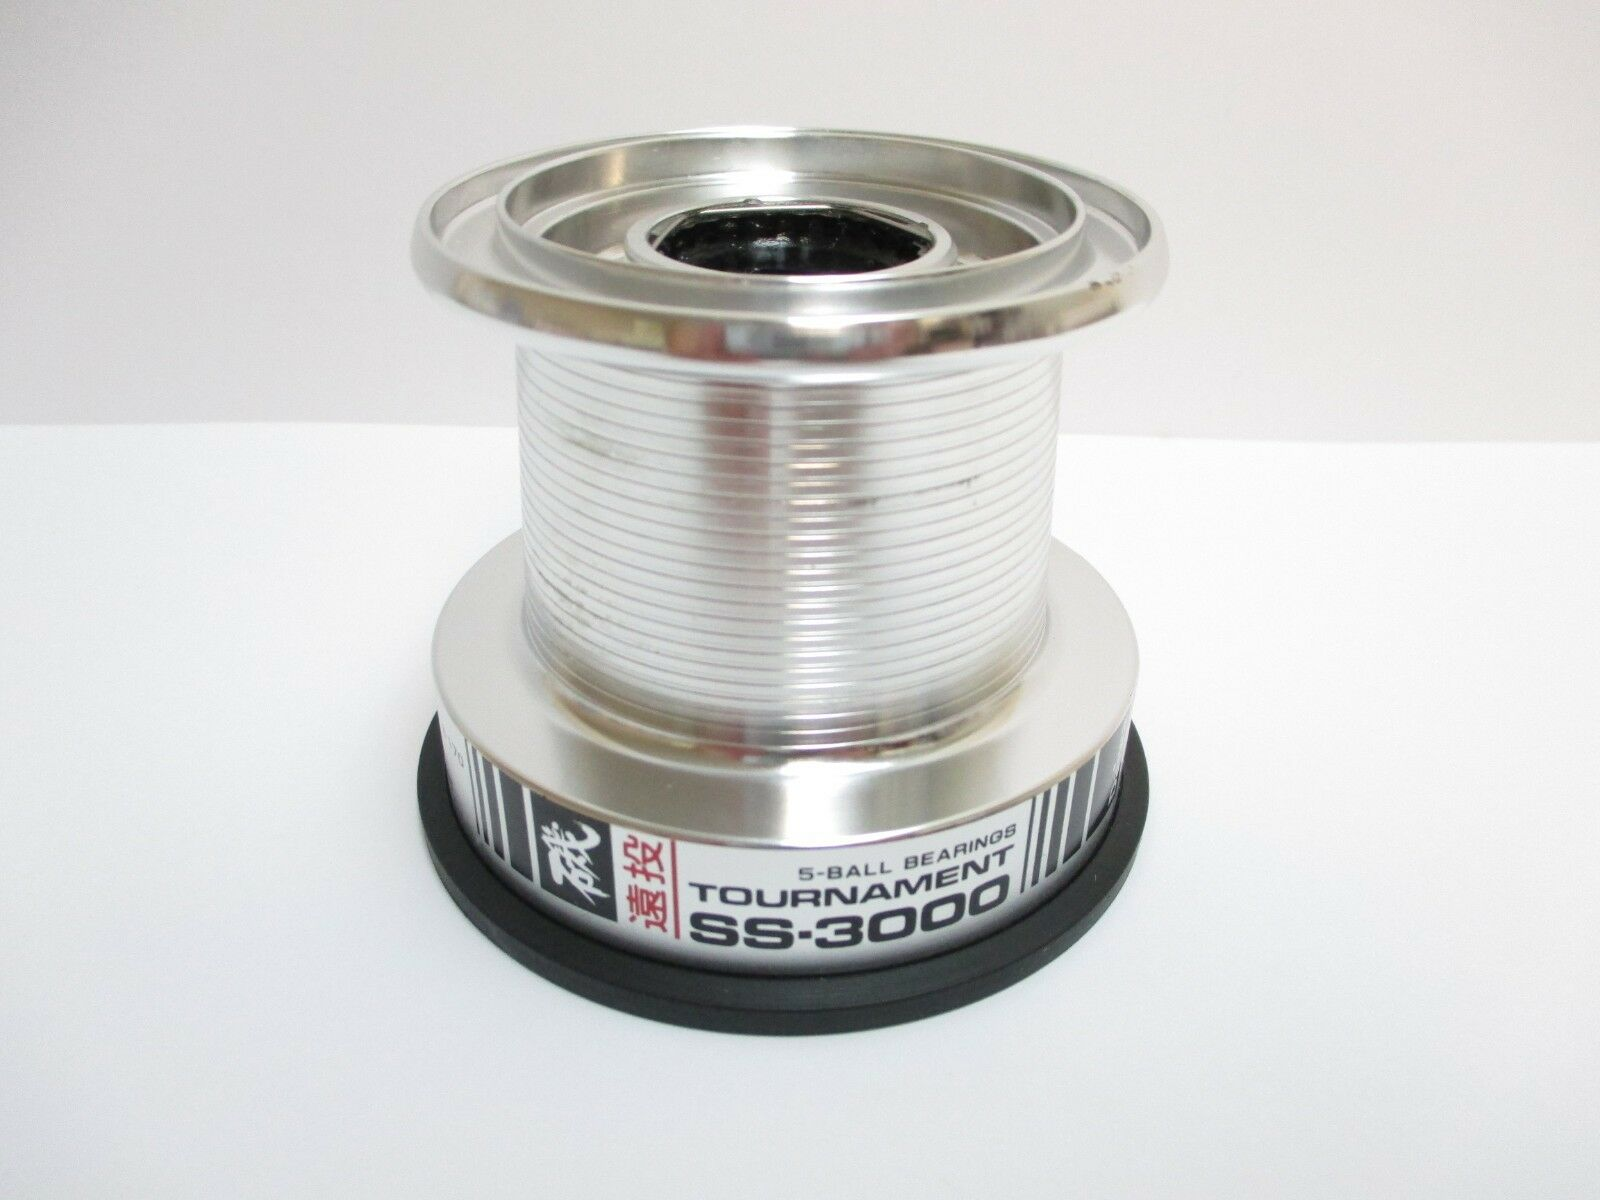 DAIWA REEL PART  E335001 Tournament SS3000  Spool Assembly Imperfect  A